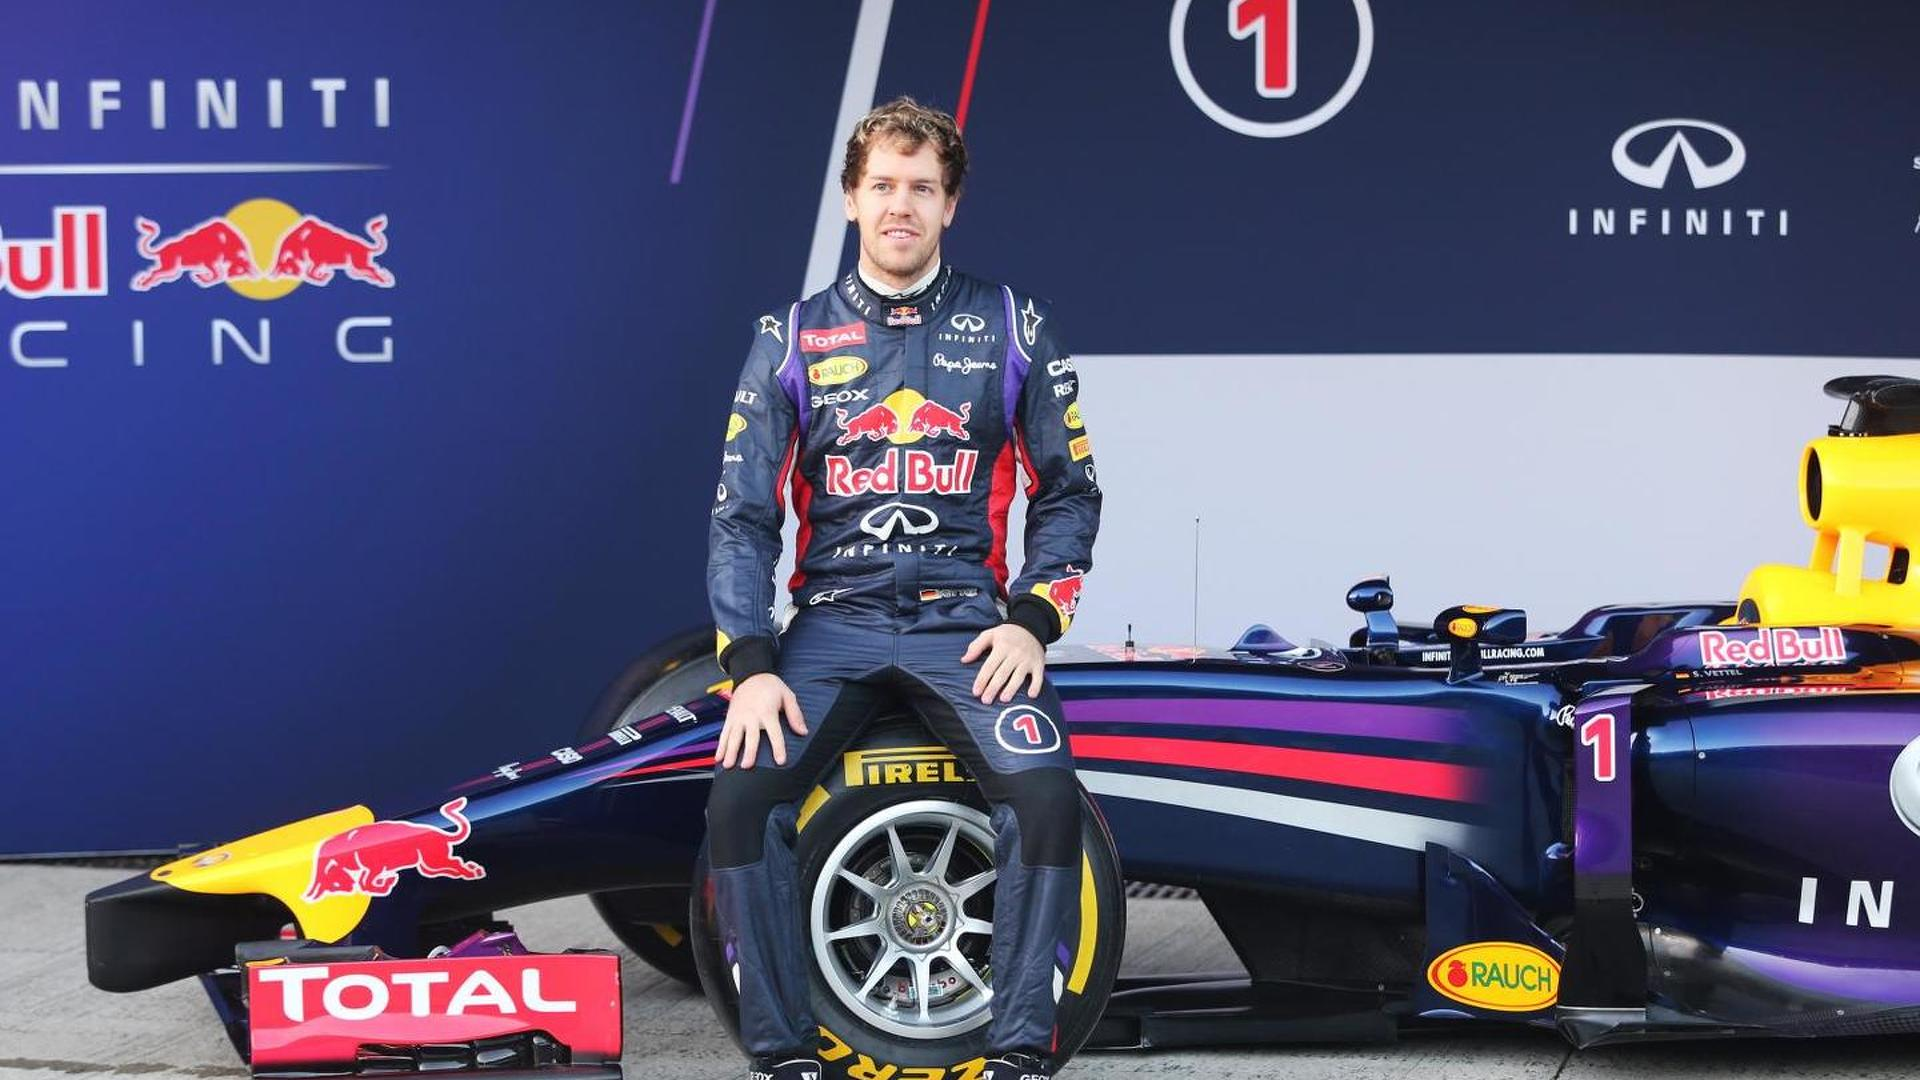 2014 cars 'perfect' for Vettel - Webber